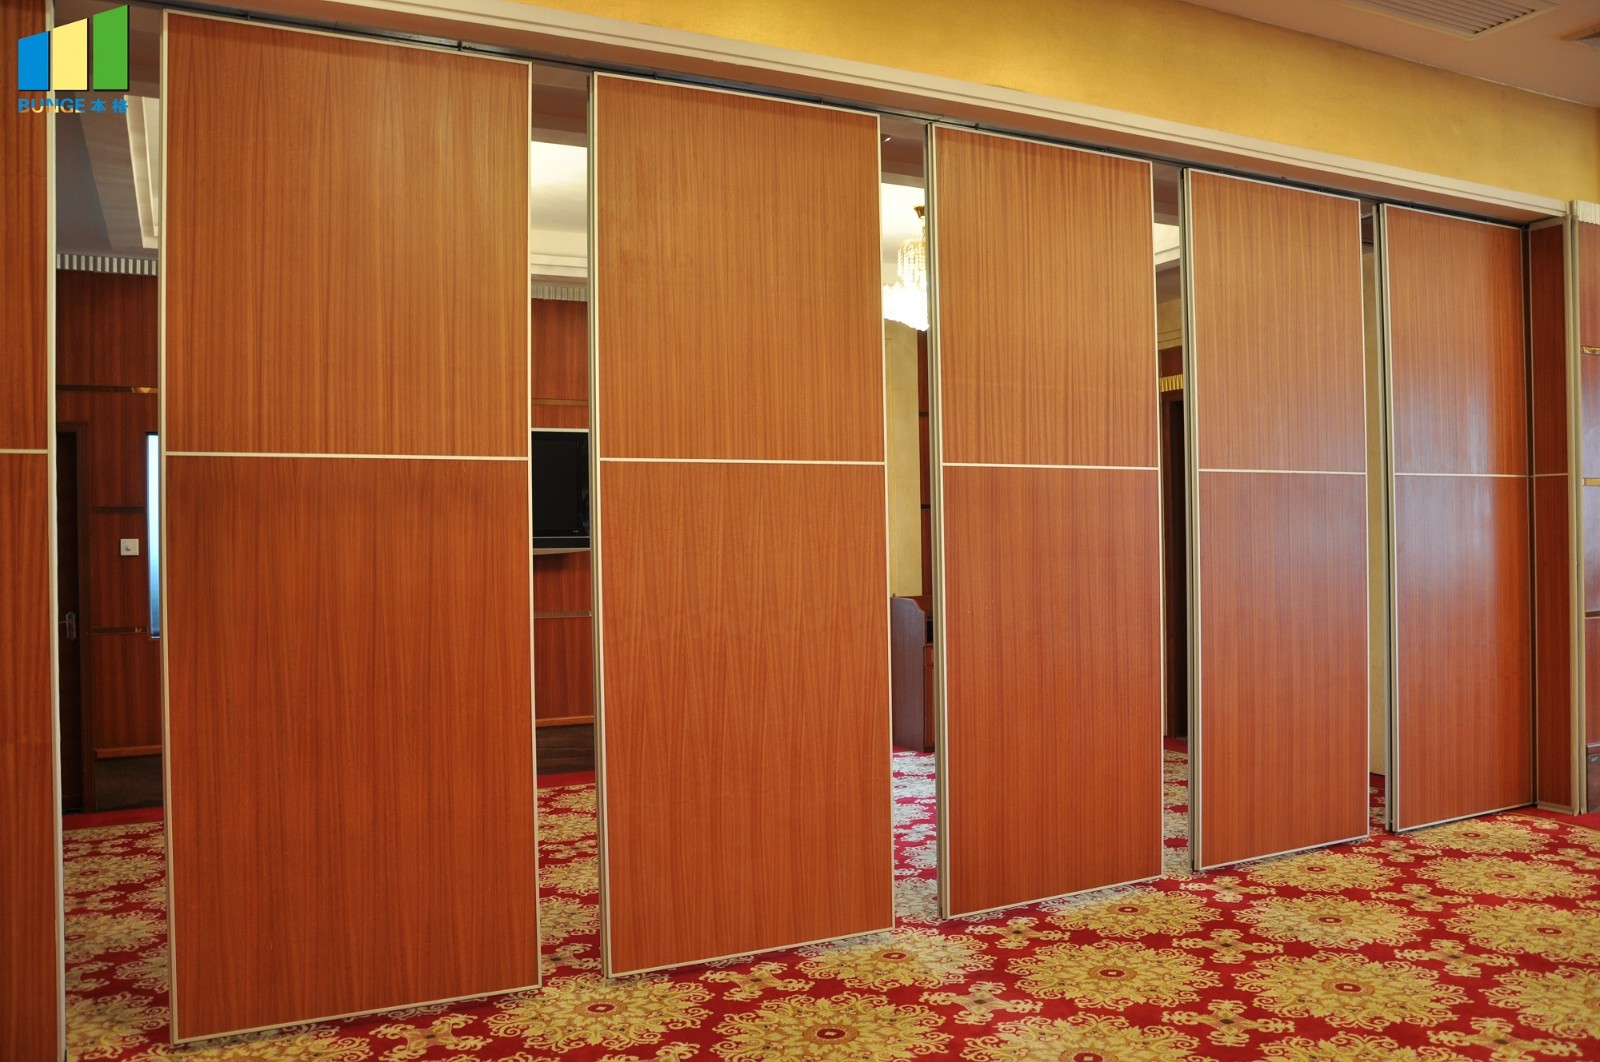 Bunge-Find Partition Door Design Soundproof Acoustic Wall Partitions-13